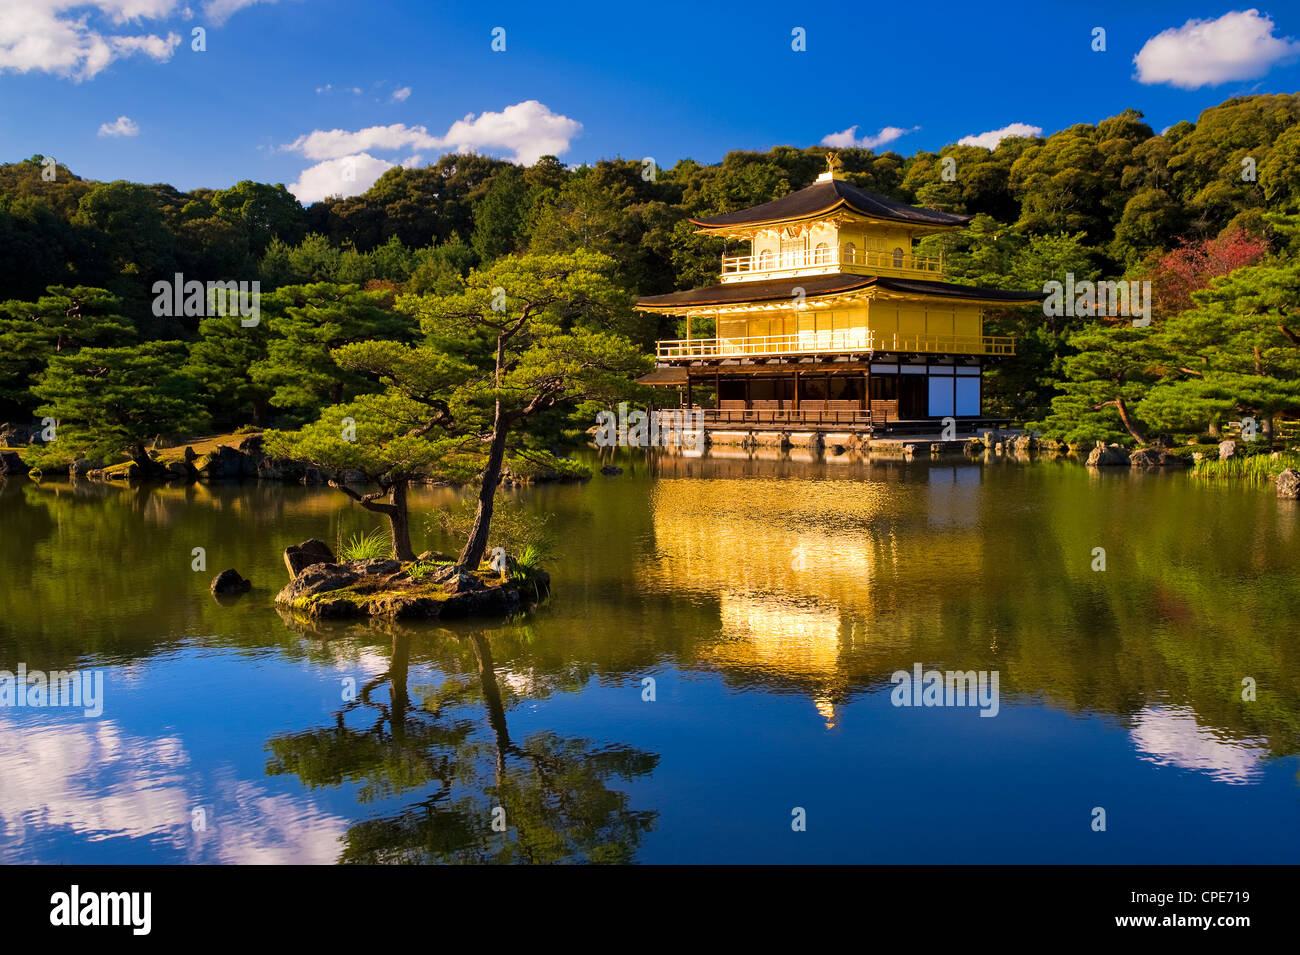 Kinkaku-ji (Temple of the Golden Pavilion), Kyoto, Japan, Asia - Stock Image